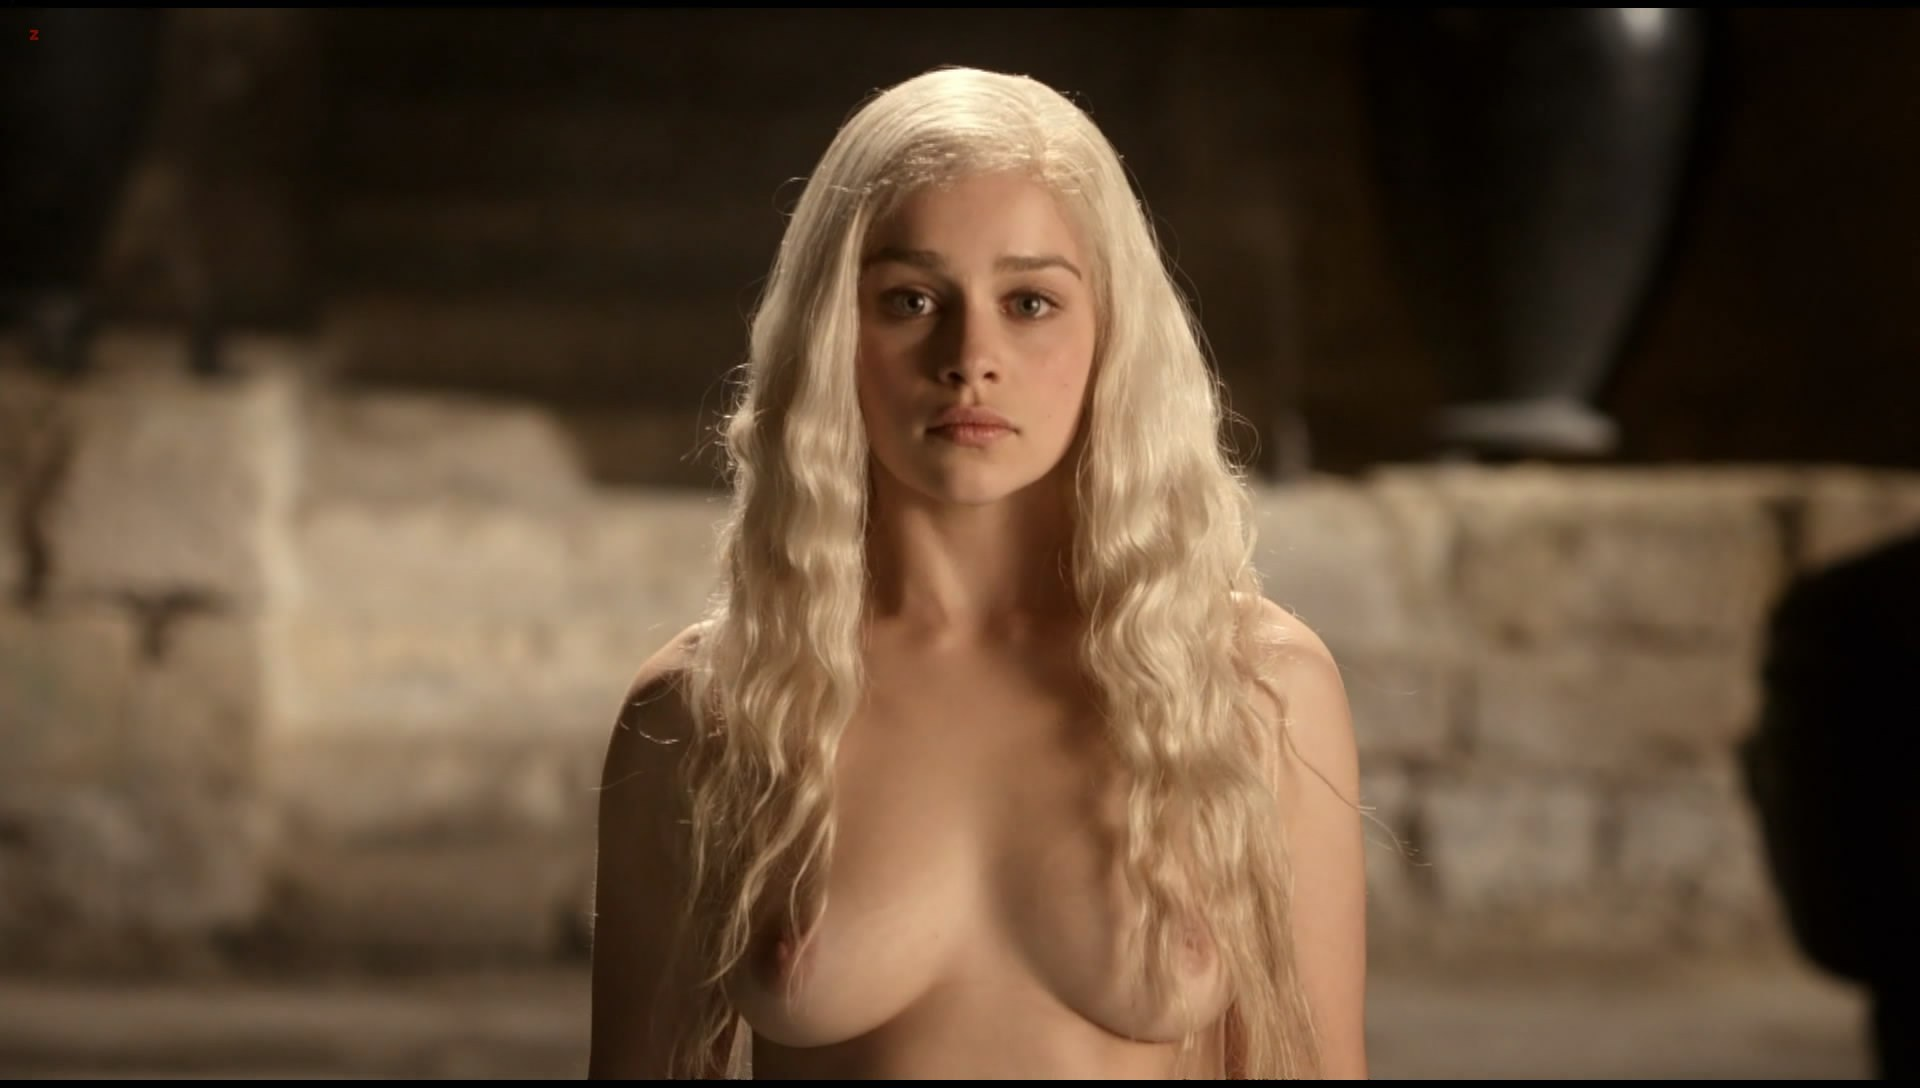 0313180644228_05_Emilia-Clarke-nude-topless-and-butt-naked-in-Game-of-Thrones-s01e01-hdtv1080p-5.jpg